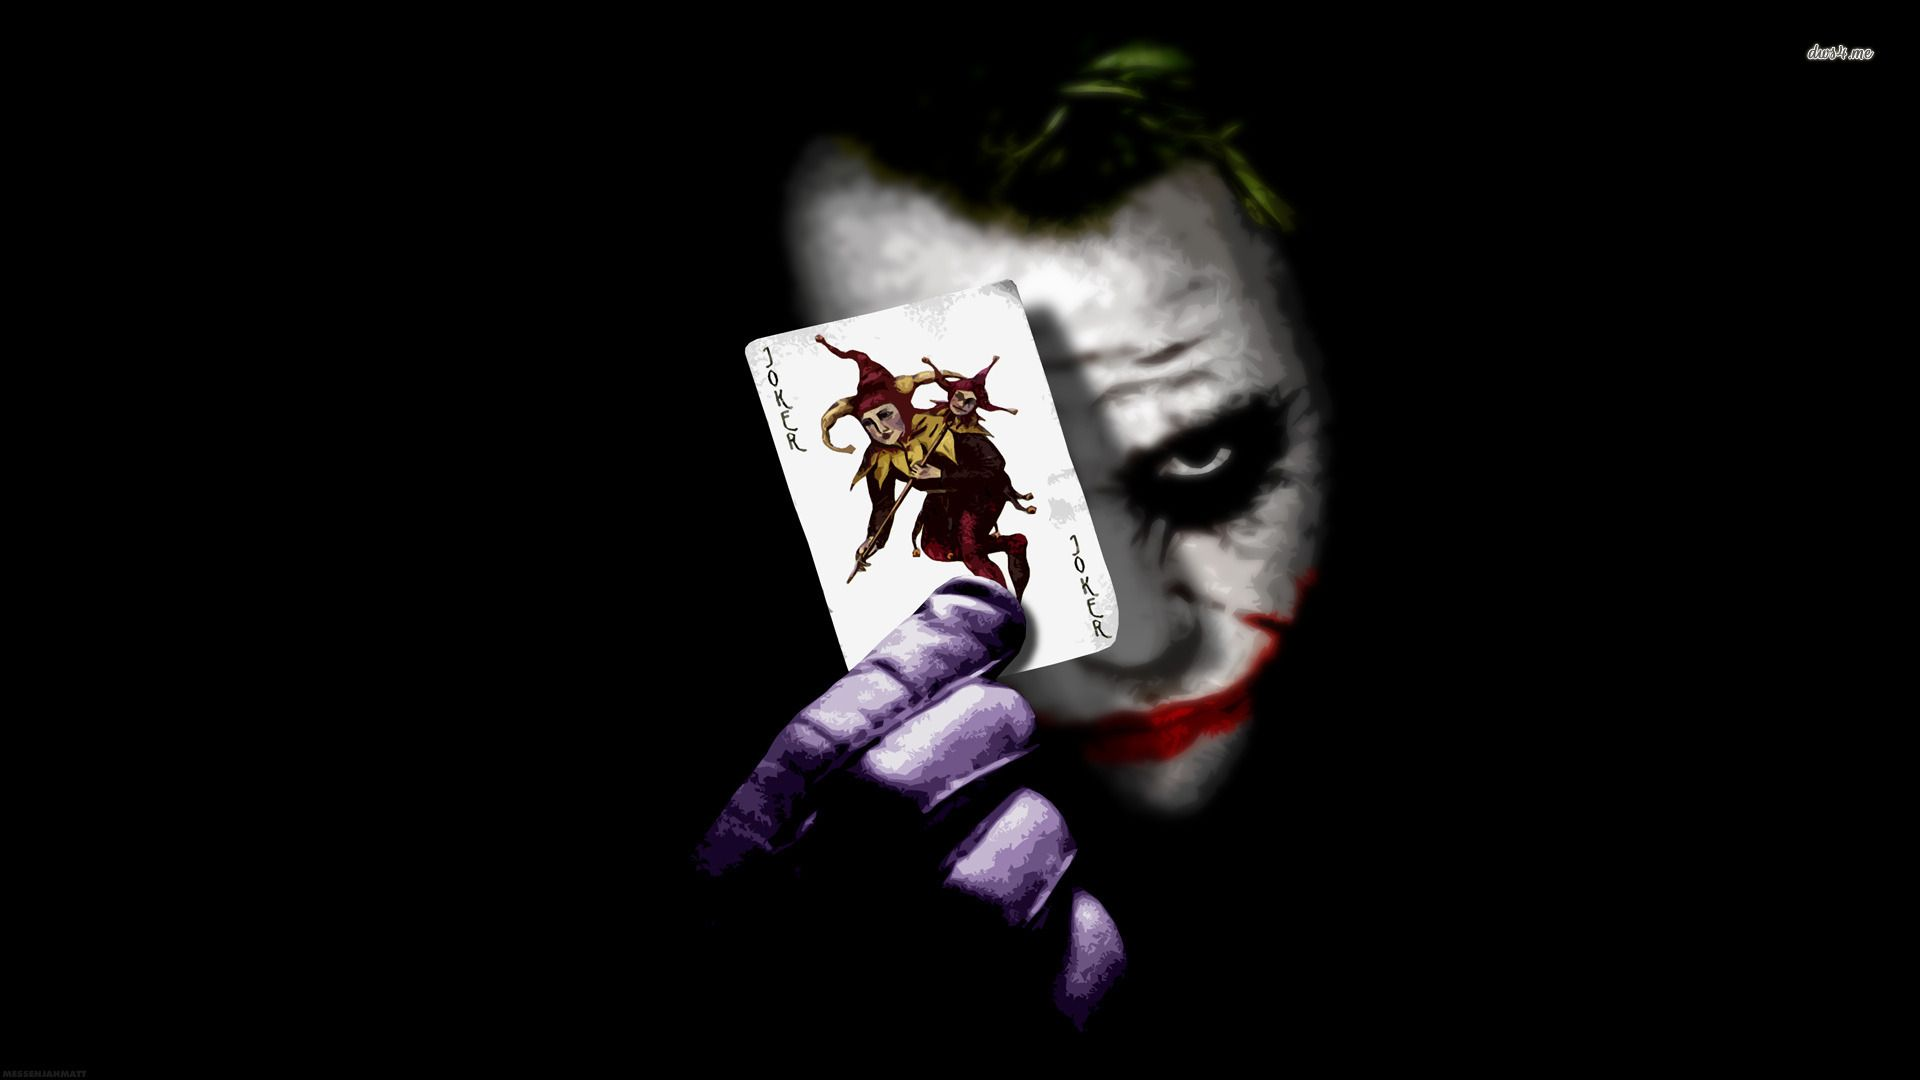 Pin By Ty Watson On Dc Comics Joker Wallpapers Joker Hd